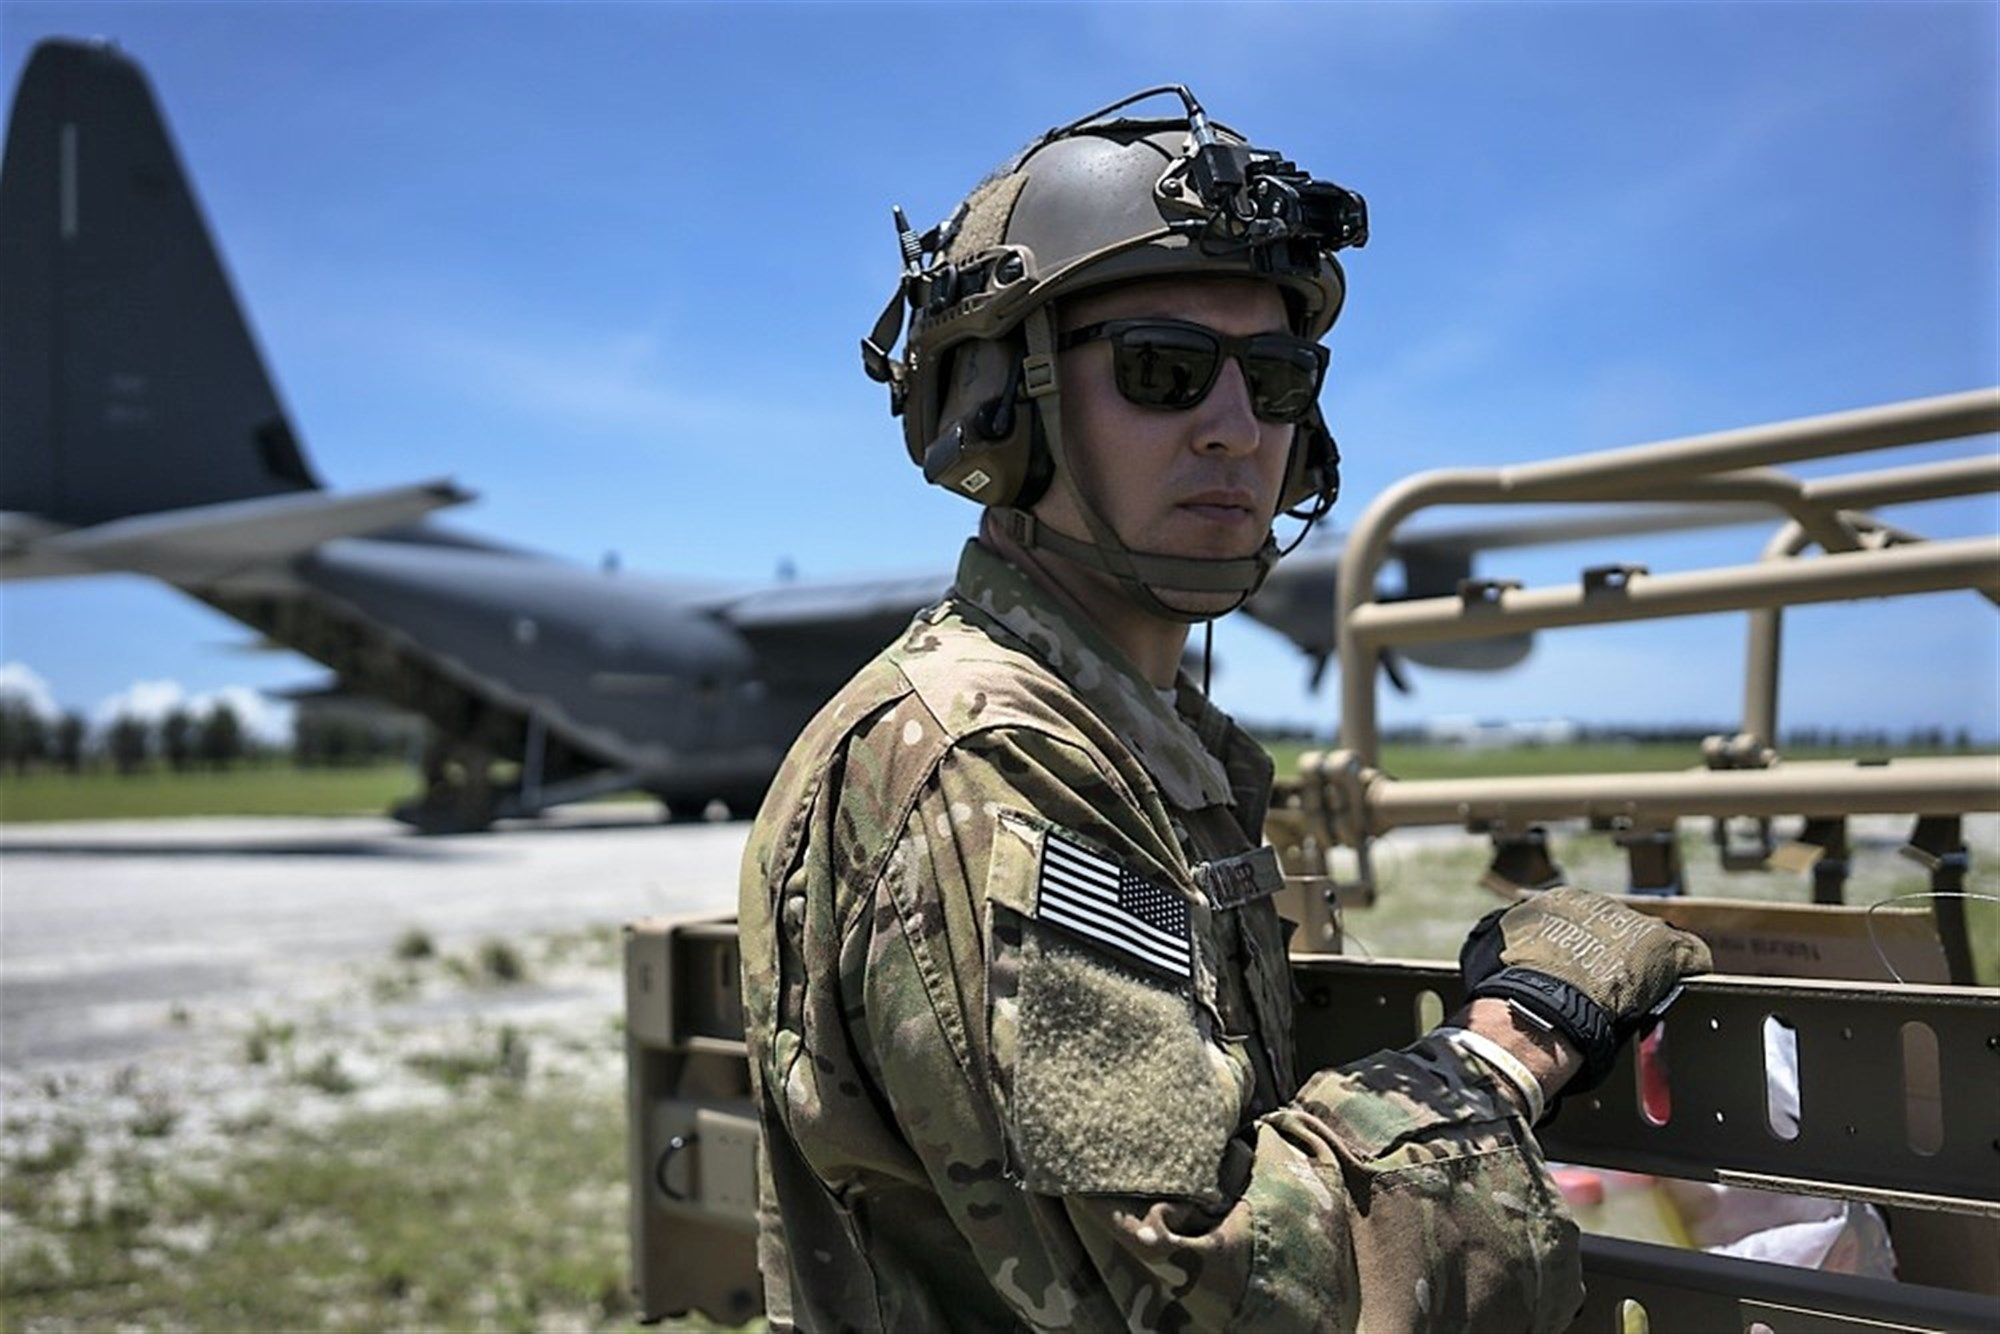 U.S. Air Force Tech. Sgt. Kade Bollinger stands postured to support the rapid infiltration and exfiltration of a tactical vehicle during a mass launch training mission June 22, 2017, at Ie Shima Range, Okinawa, Japan. (U.S. Air Force photo by Capt. Jessica Tait)